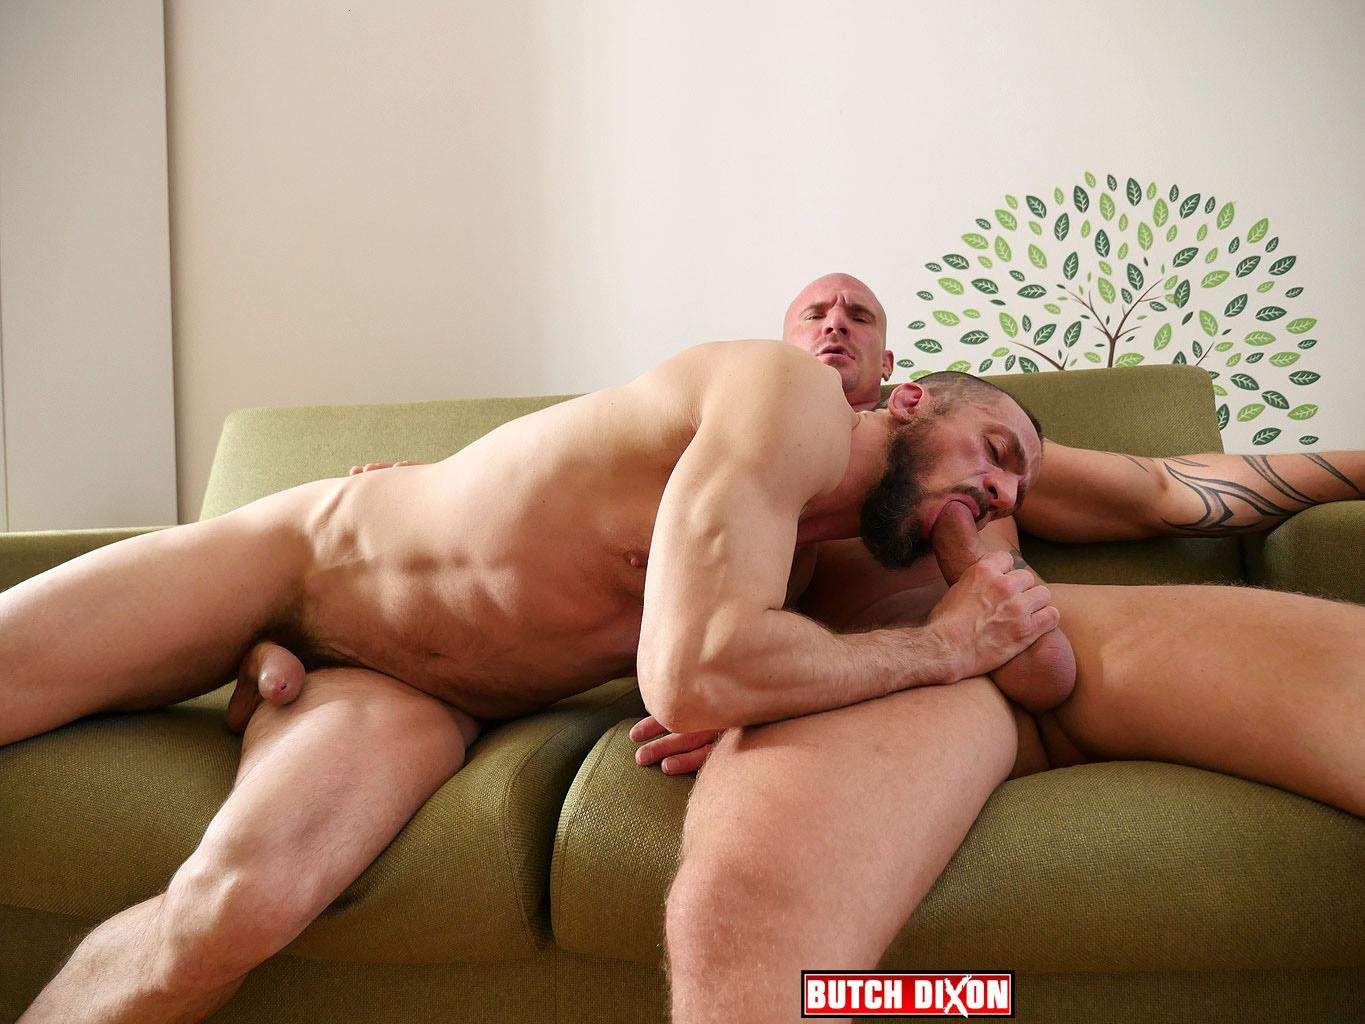 Butch-Dixon-Erik-Lenn-and-Mike-Bourne-Masculine-Guys-Fucking-Bareback-Amateur-Gay-Porn-11 Beefy Masculine Guys Fucking Bareback With A Big Uncut Cock